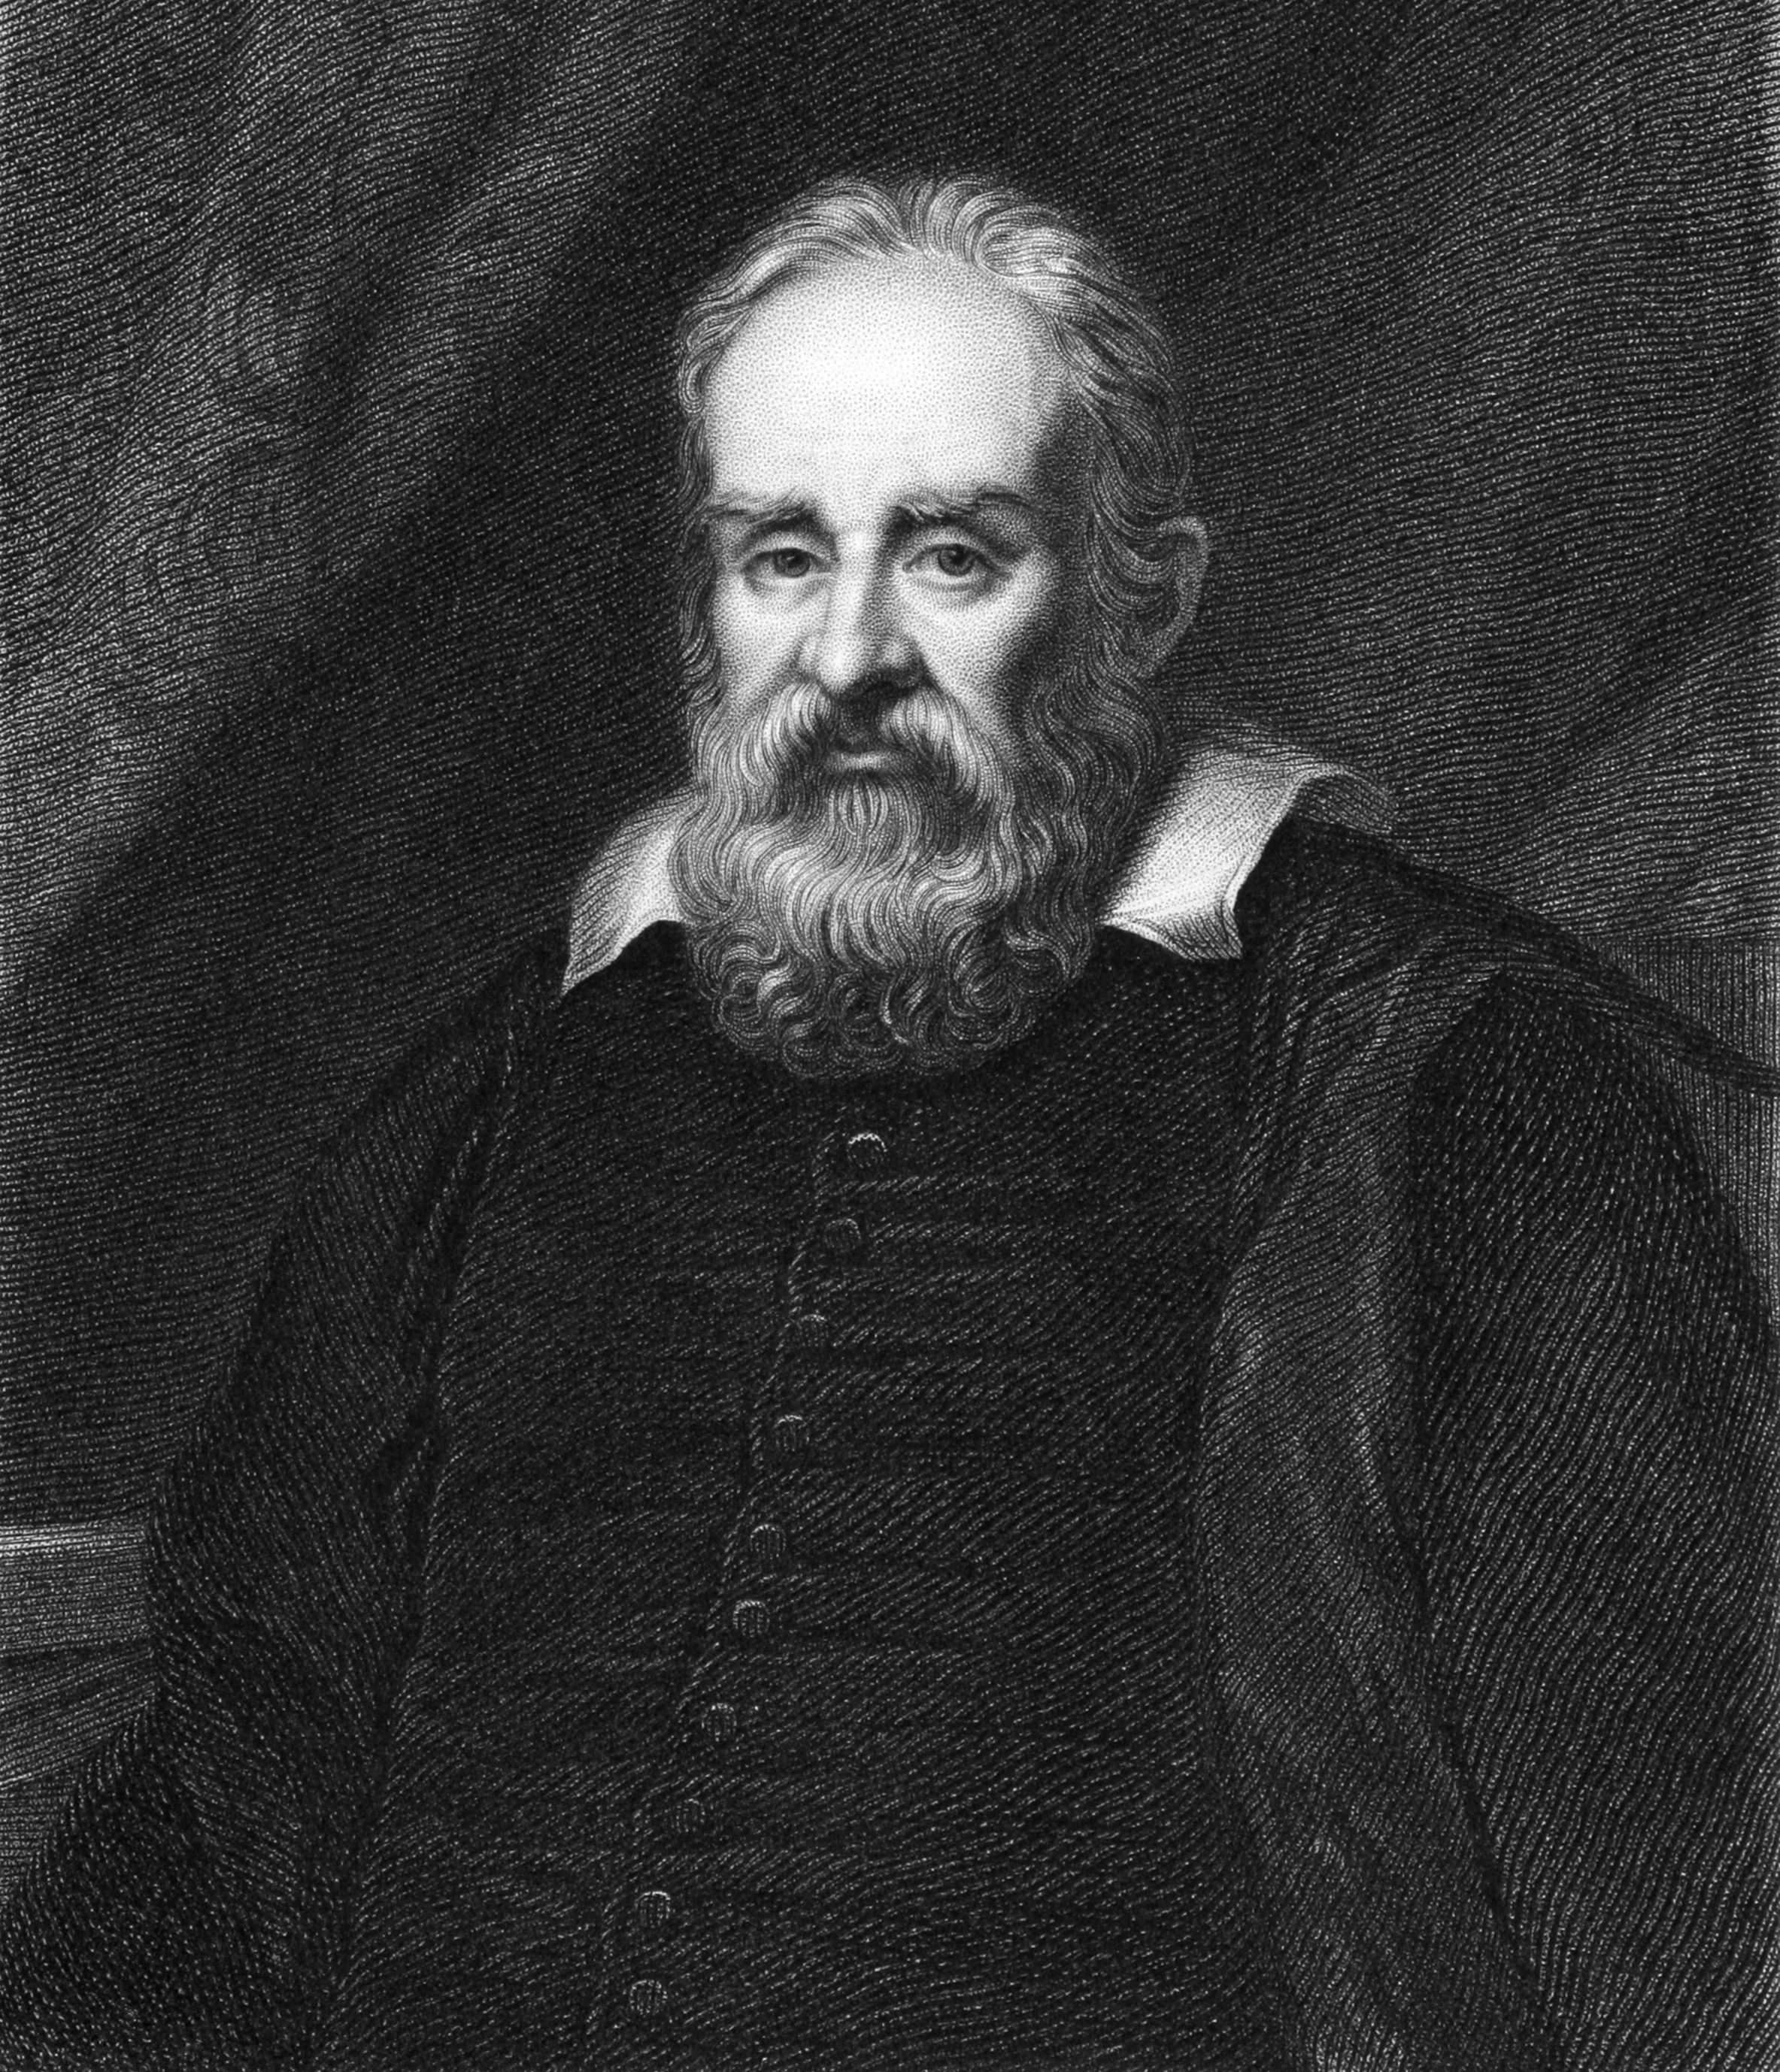 4. Galileo Galilei and Pierre Gassendi were the first to name the lights